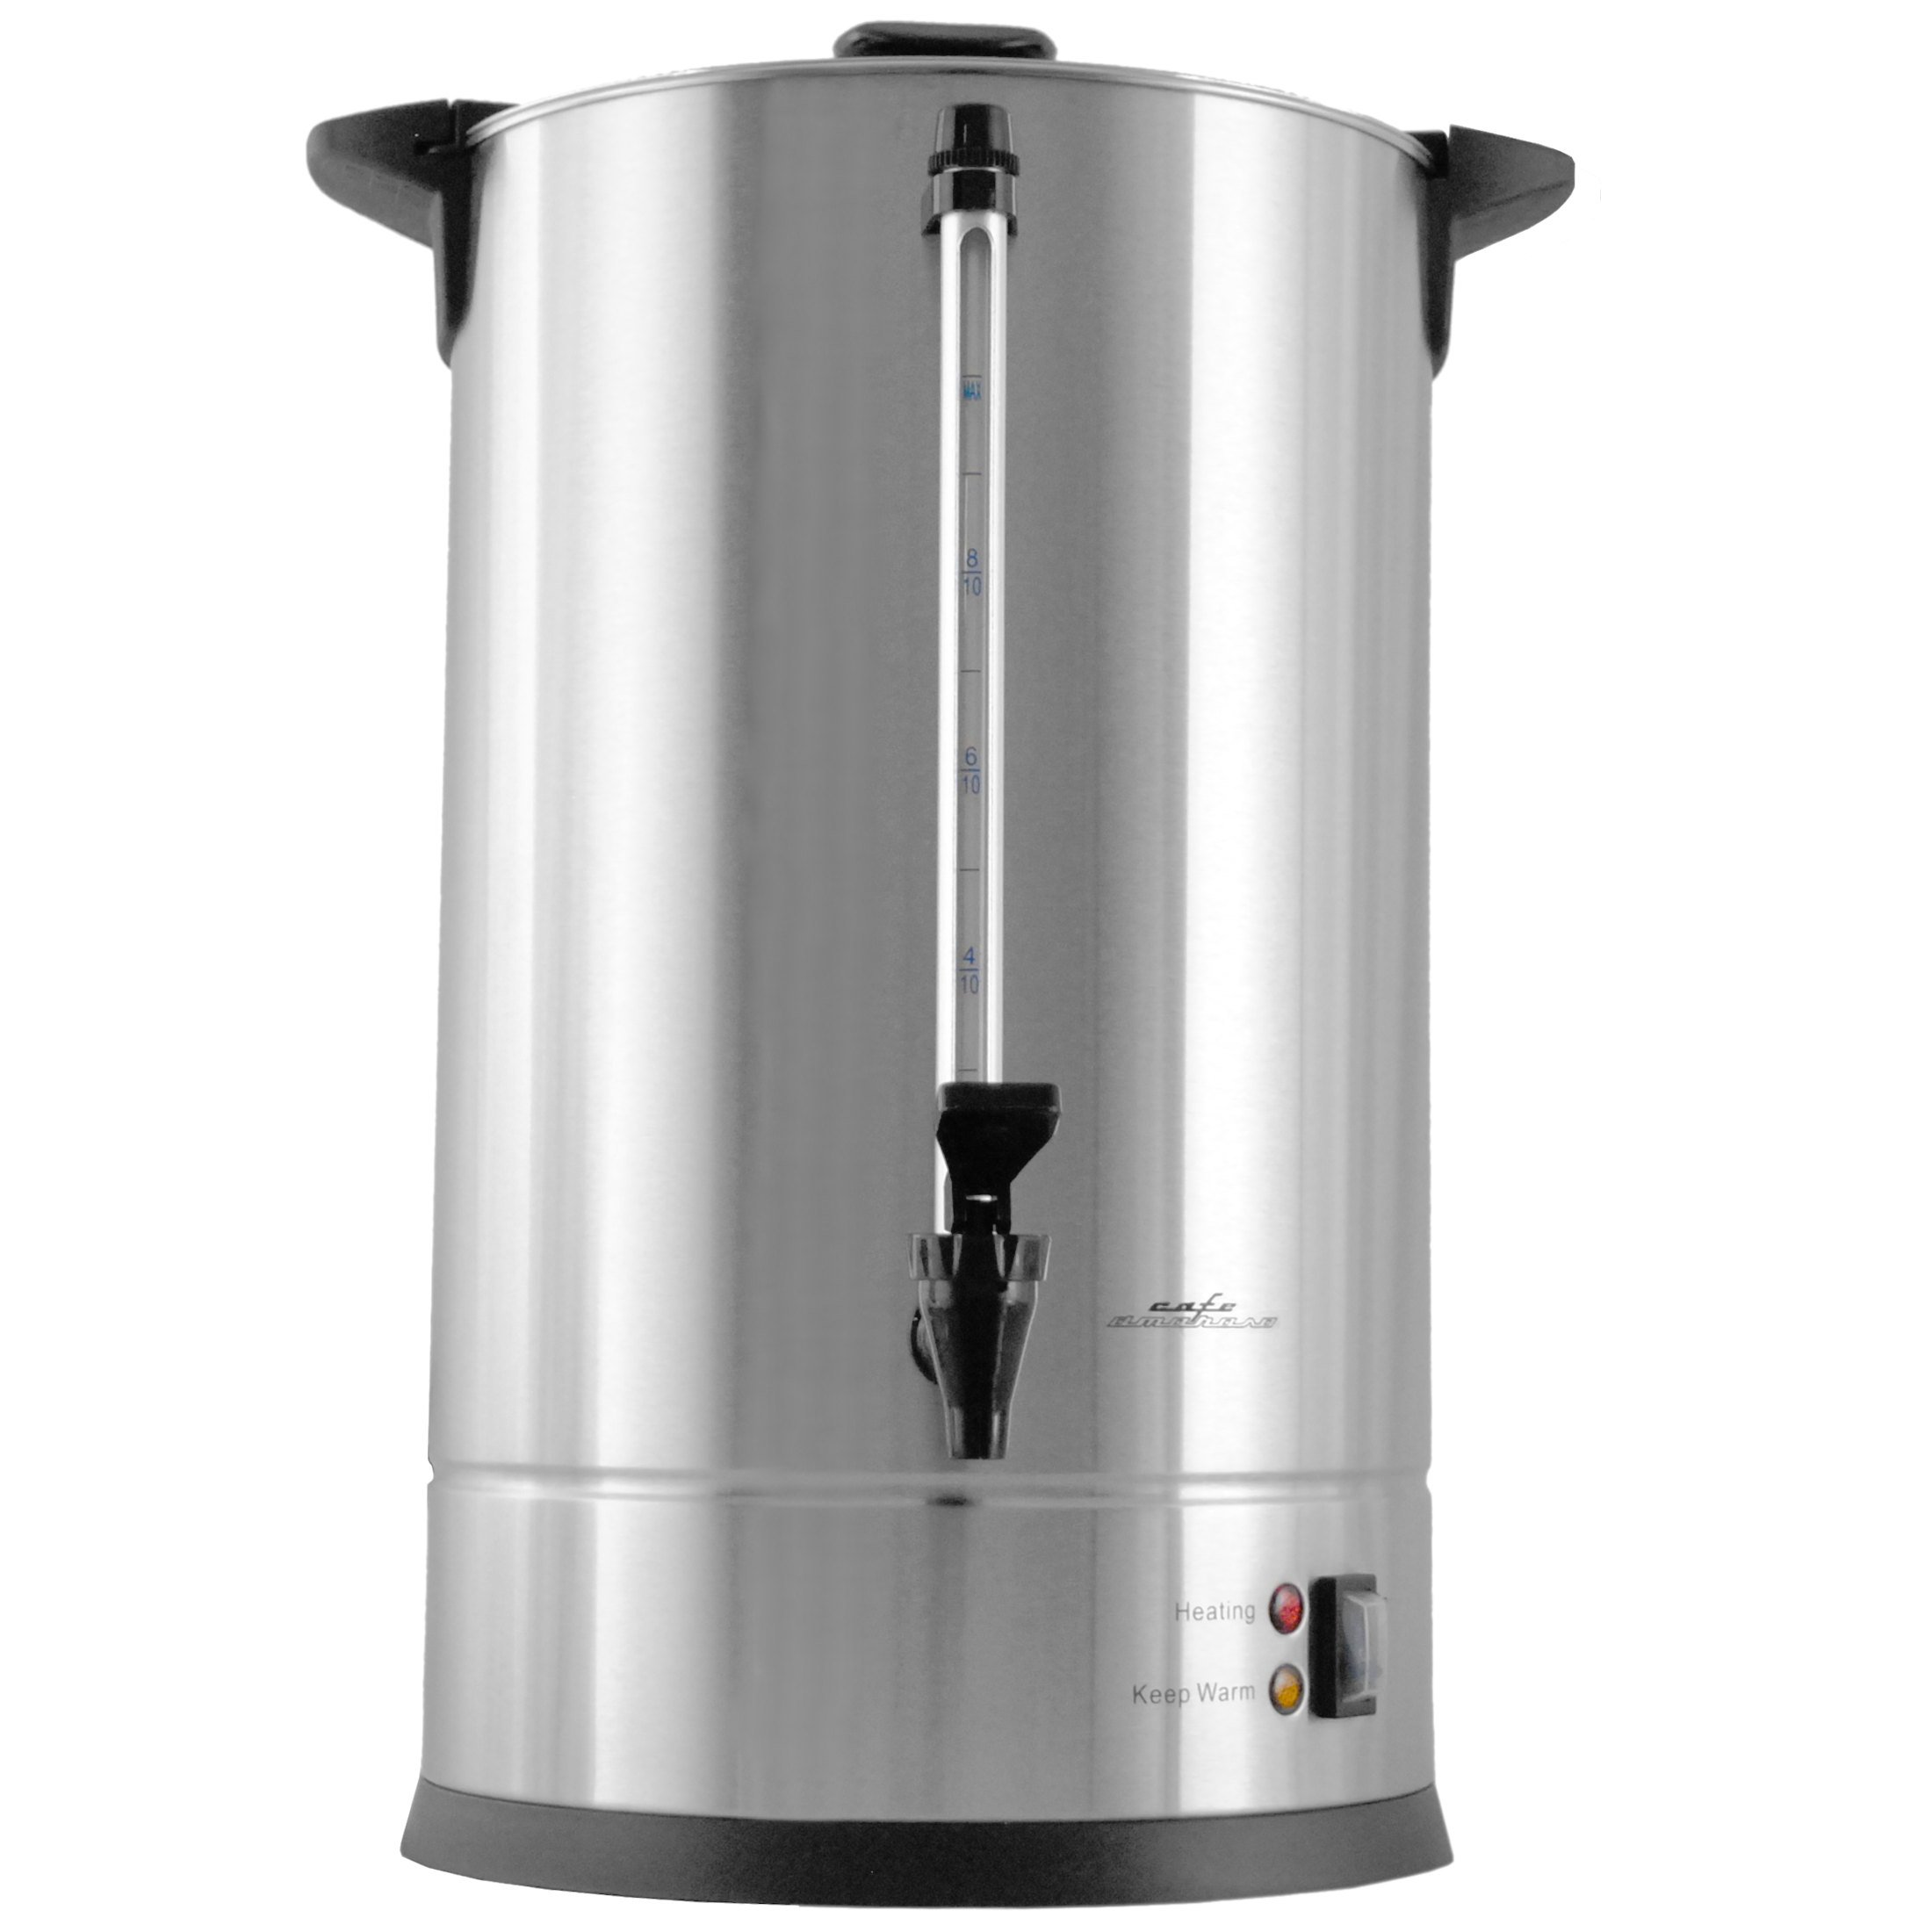 Cafe Amoroso 50 Cup Stainless Steel Coffee Maker Urn - Premium Commercial Double Wall Design - Perfect For Catering, Churches, Banquets, Restaurants - 1 Year Warranty (50 Cup)